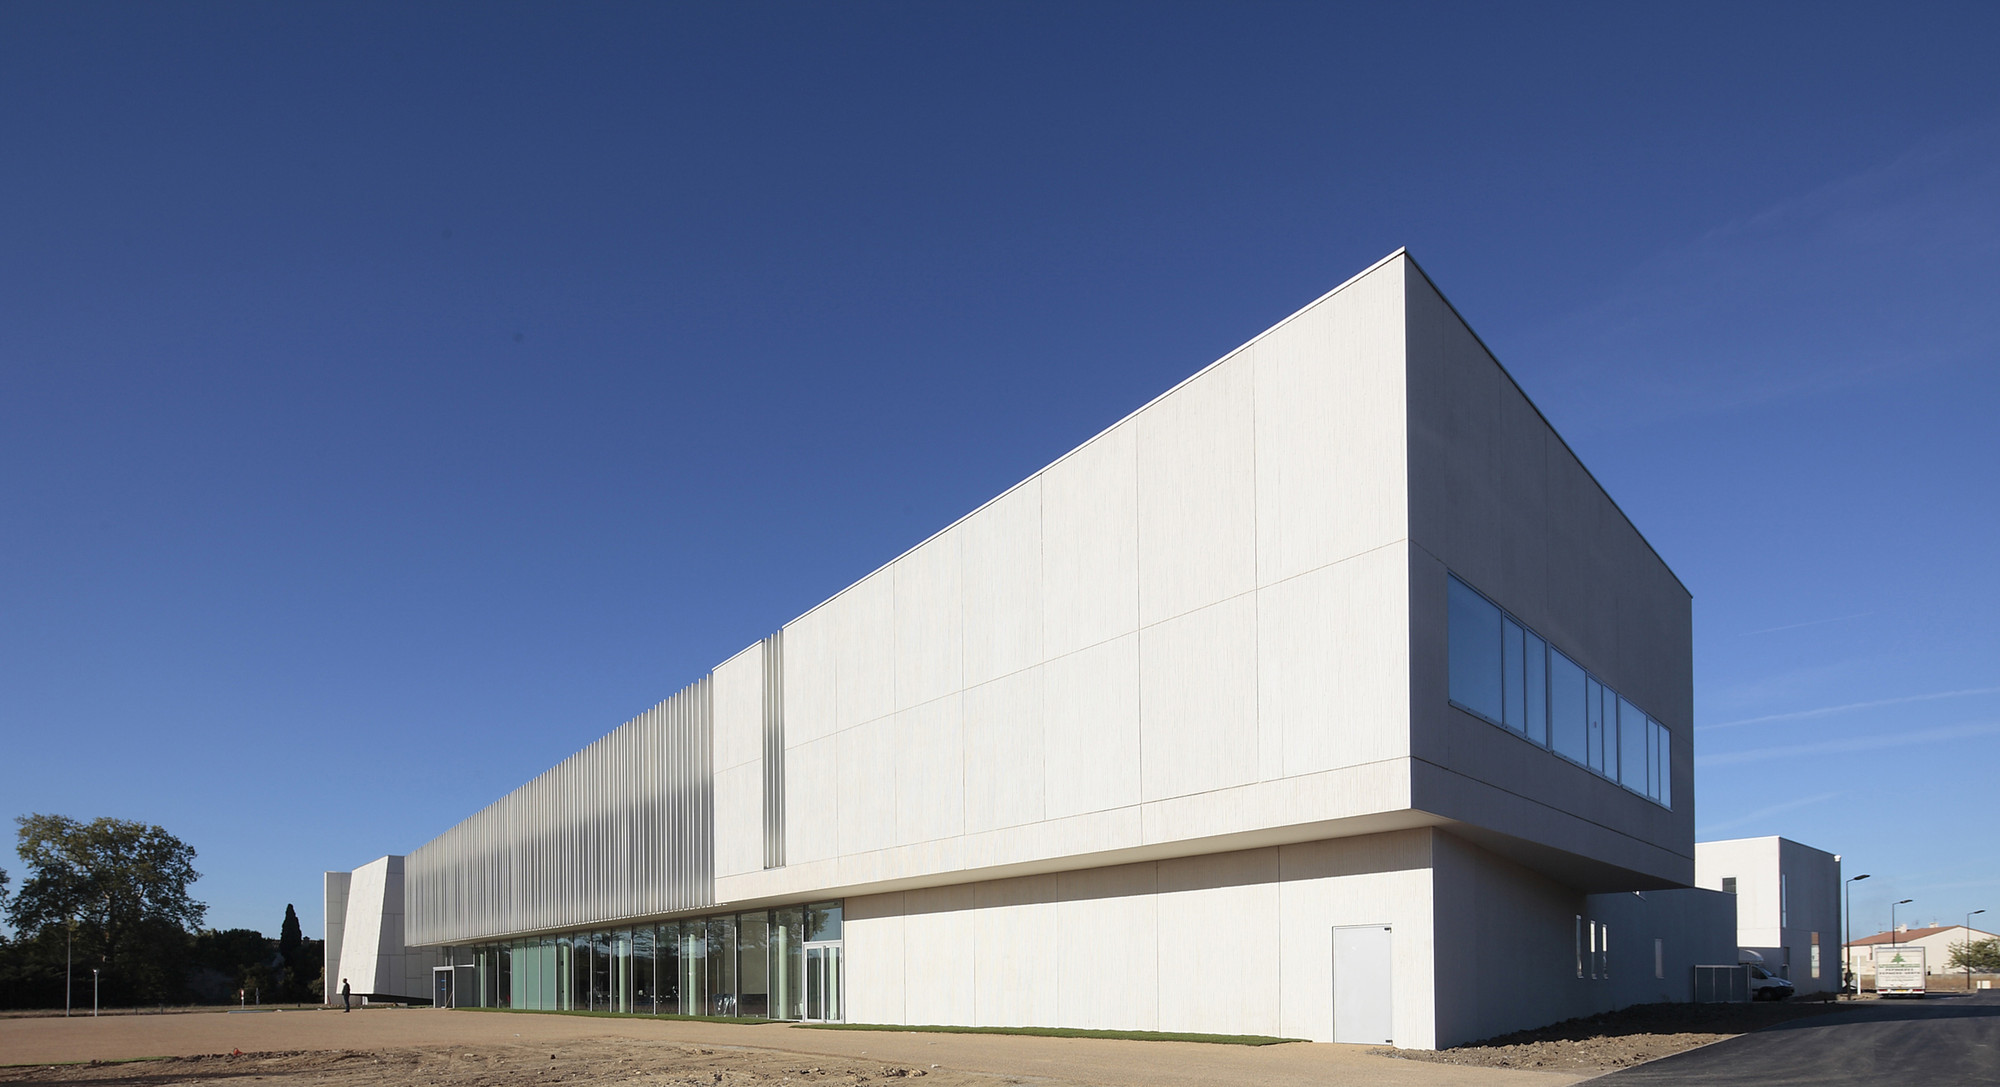 Gallery of art school carcassonne jacques ripault for Architecture 54